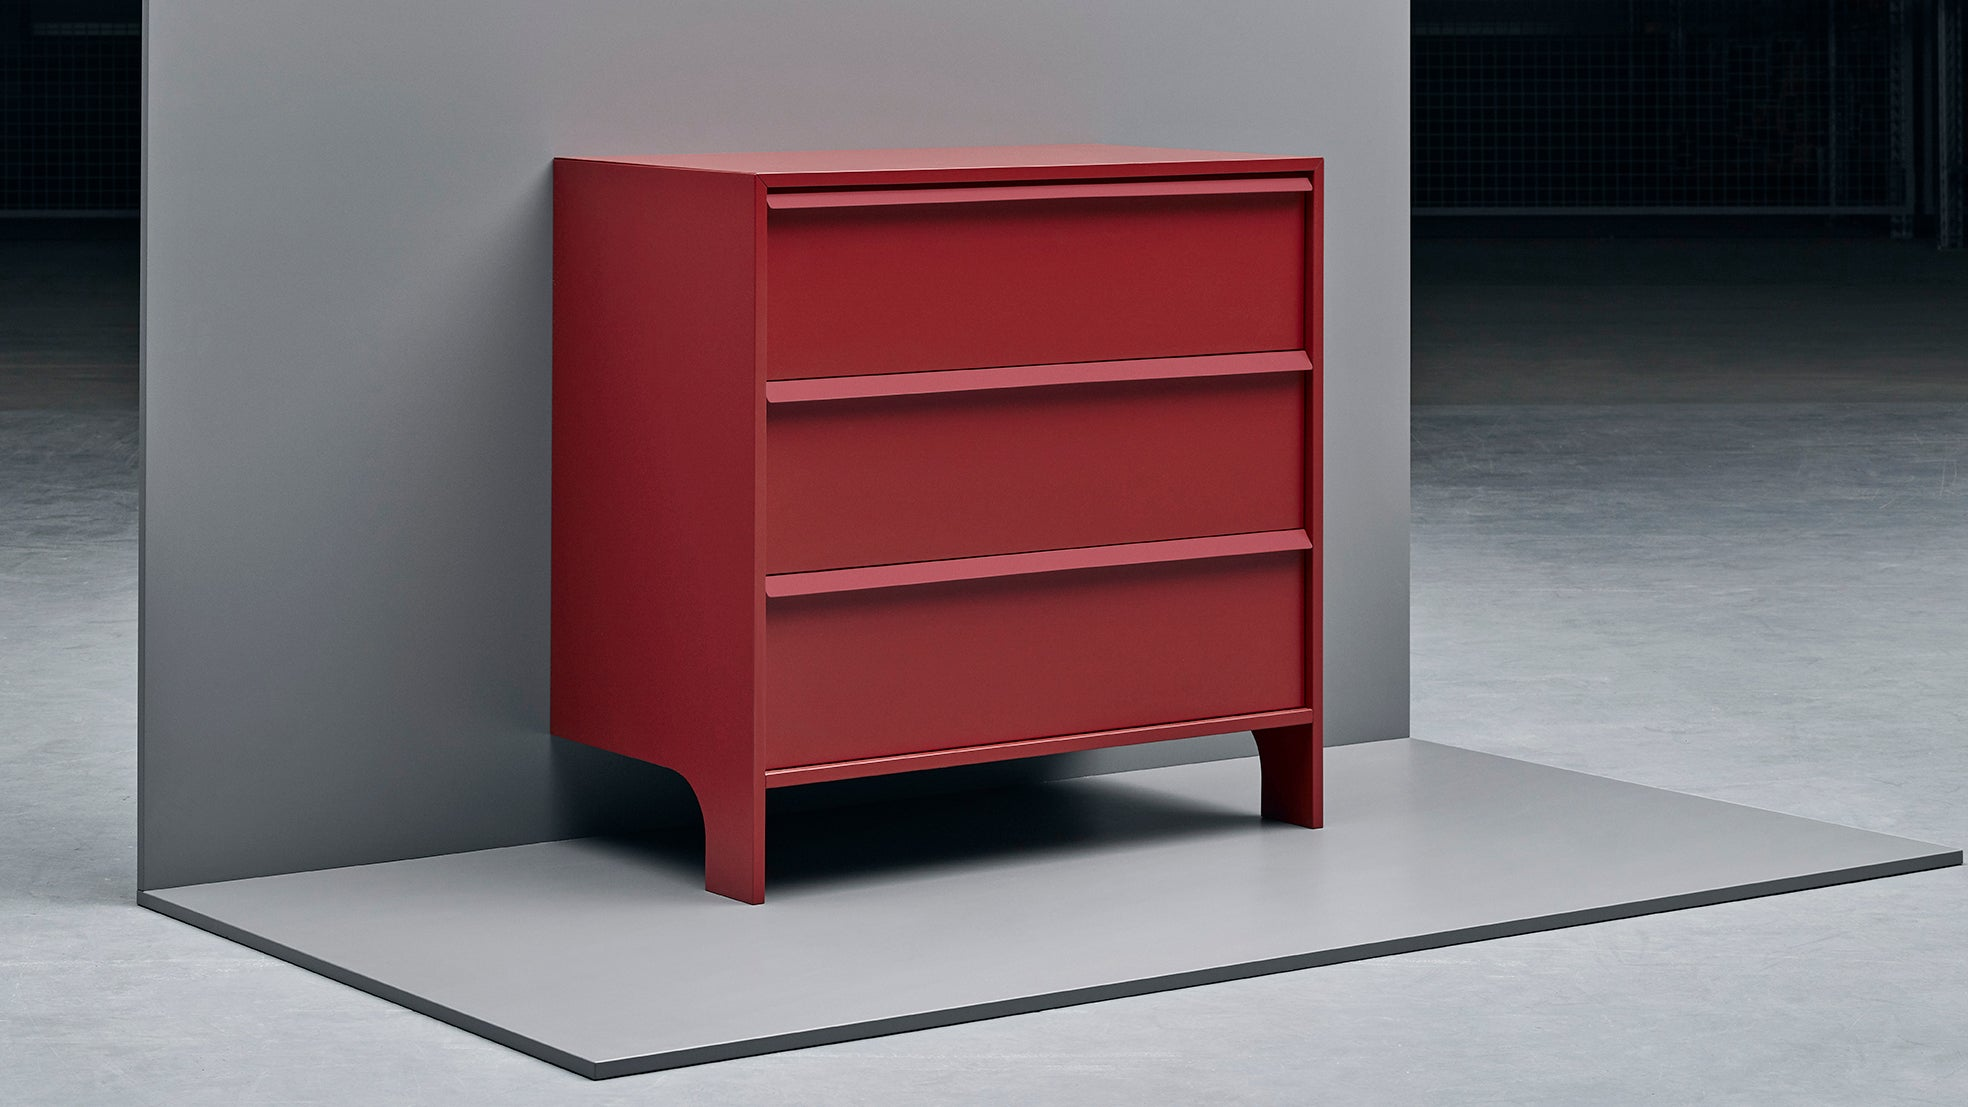 IKEA Designed A New Dresser Line With Improved Stability Features To Prevent Dangerous Tip-Overs